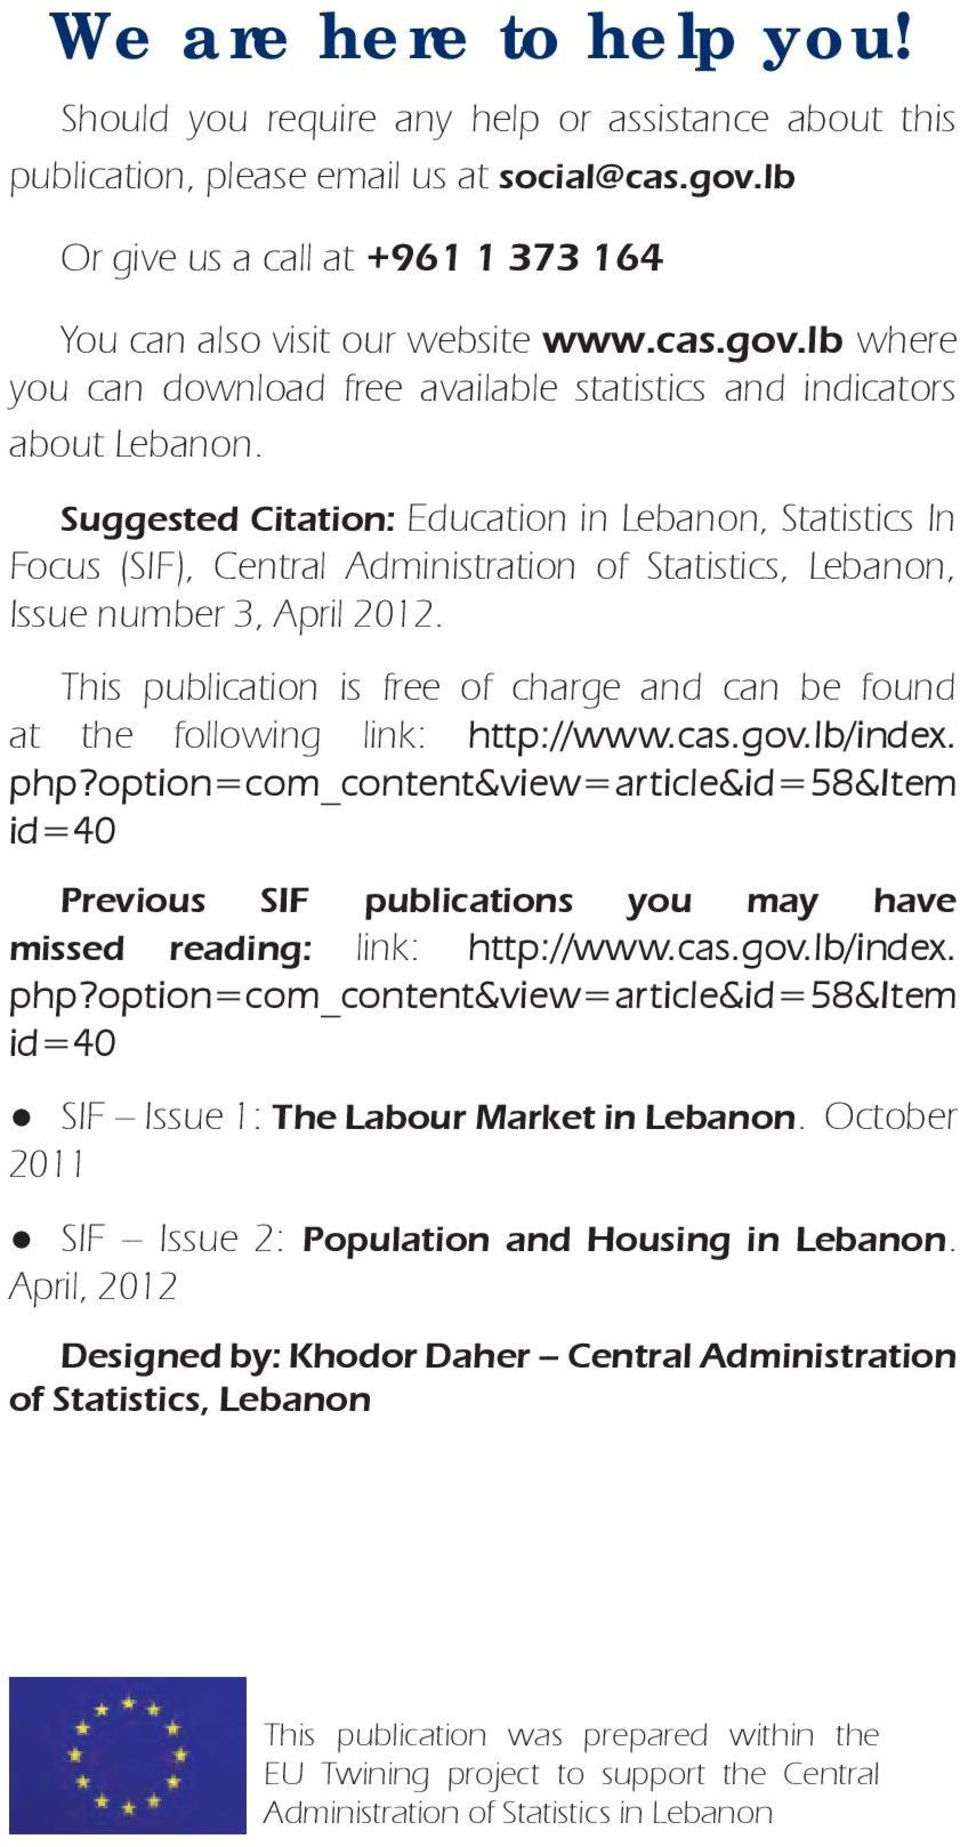 Suggested Citation: Education in Lebanon, Statistics In Focus (SIF), Central Administration of Statistics, Lebanon, Issue number 3, April 12.